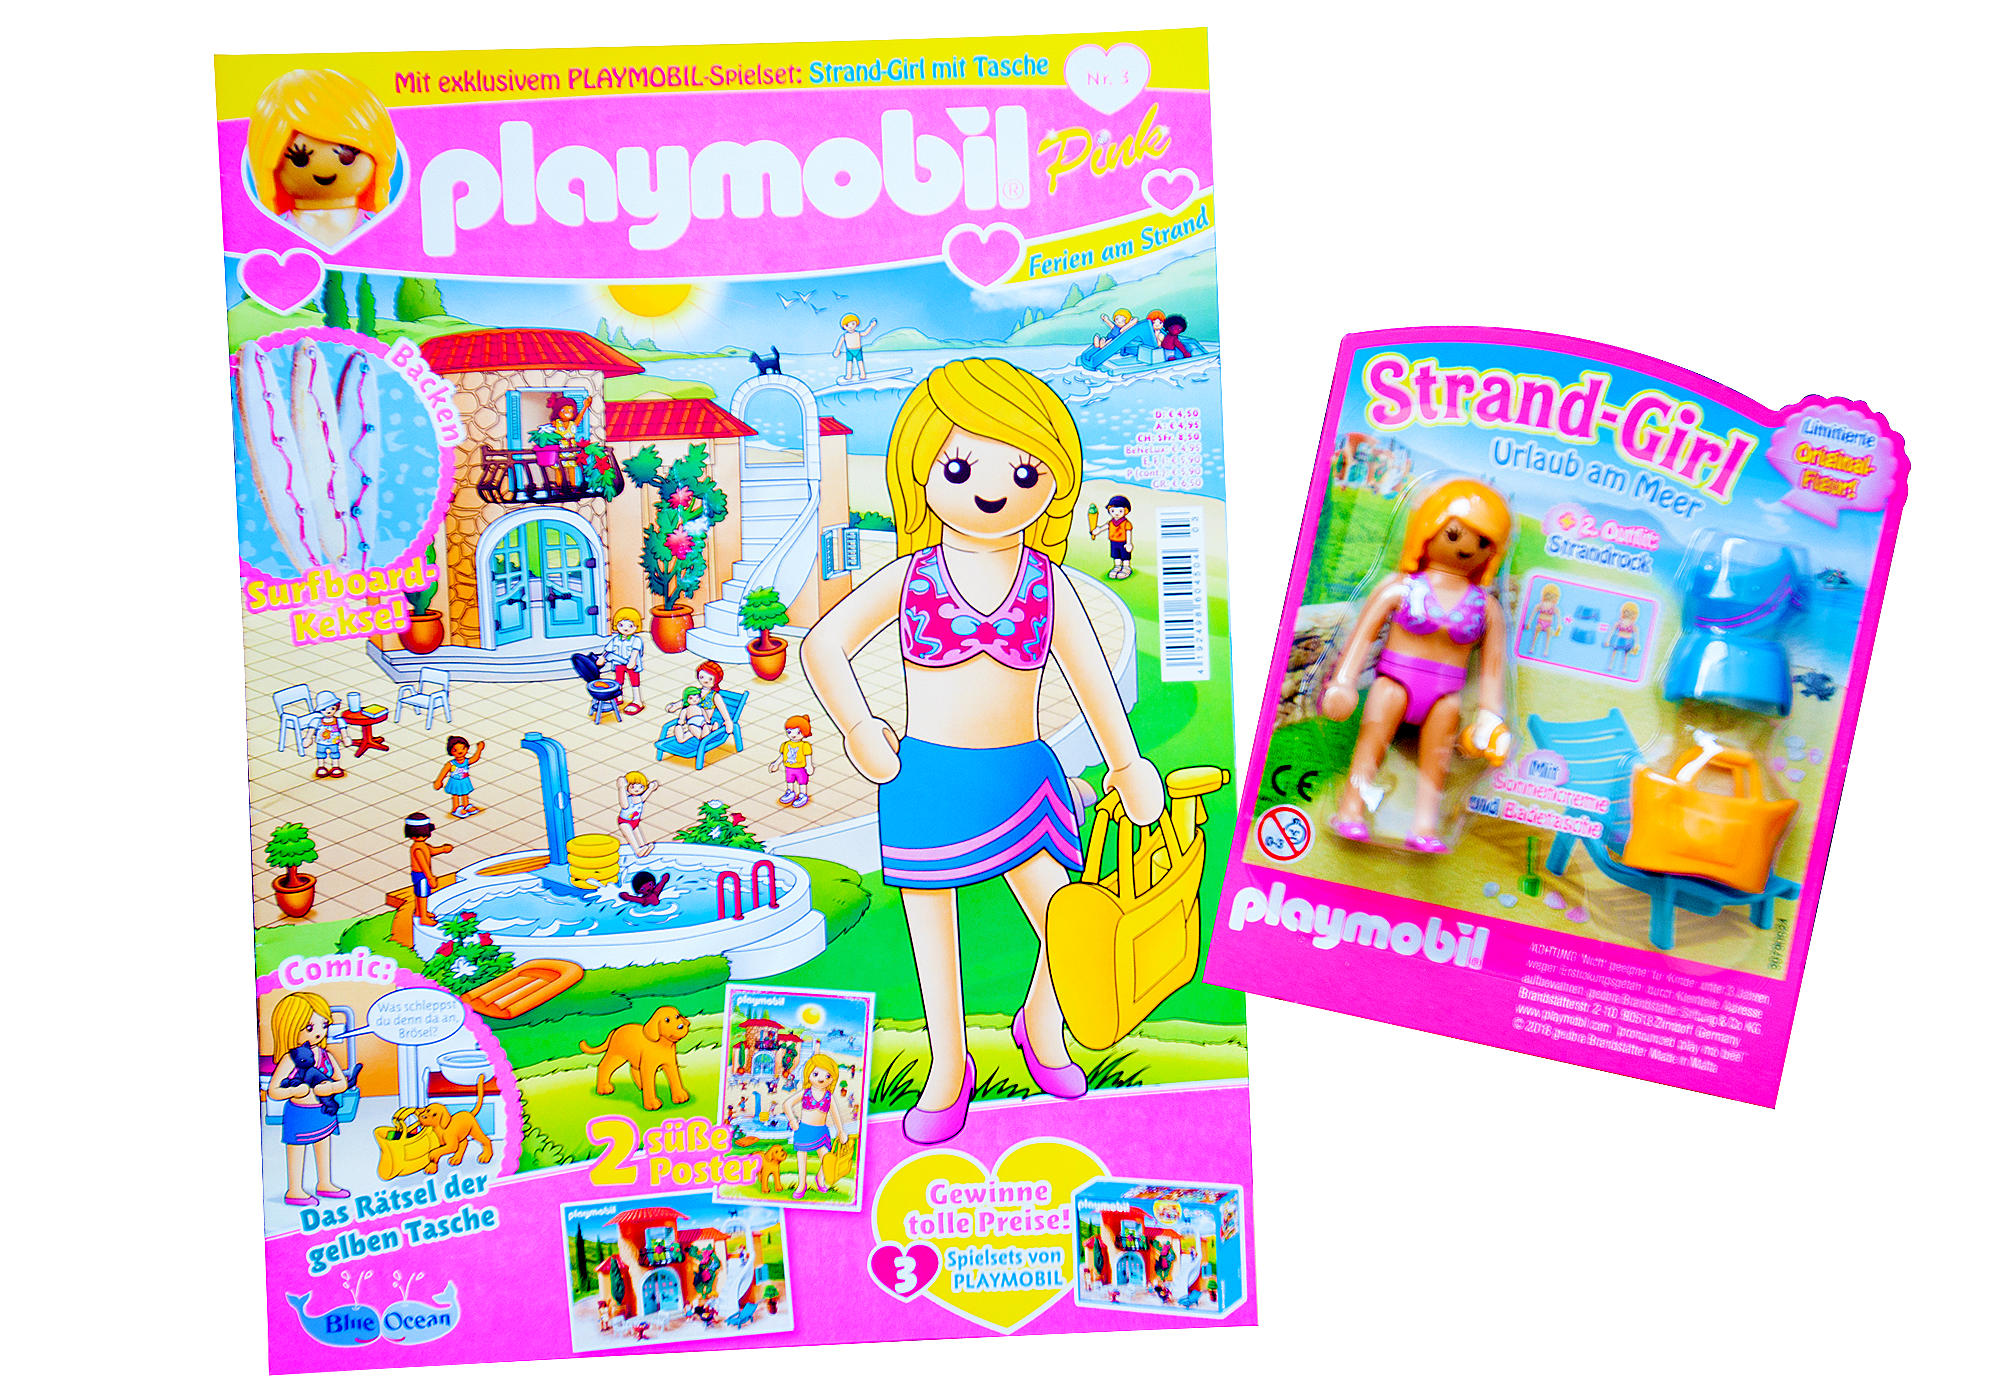 http://media.playmobil.com/i/playmobil/80606_product_detail